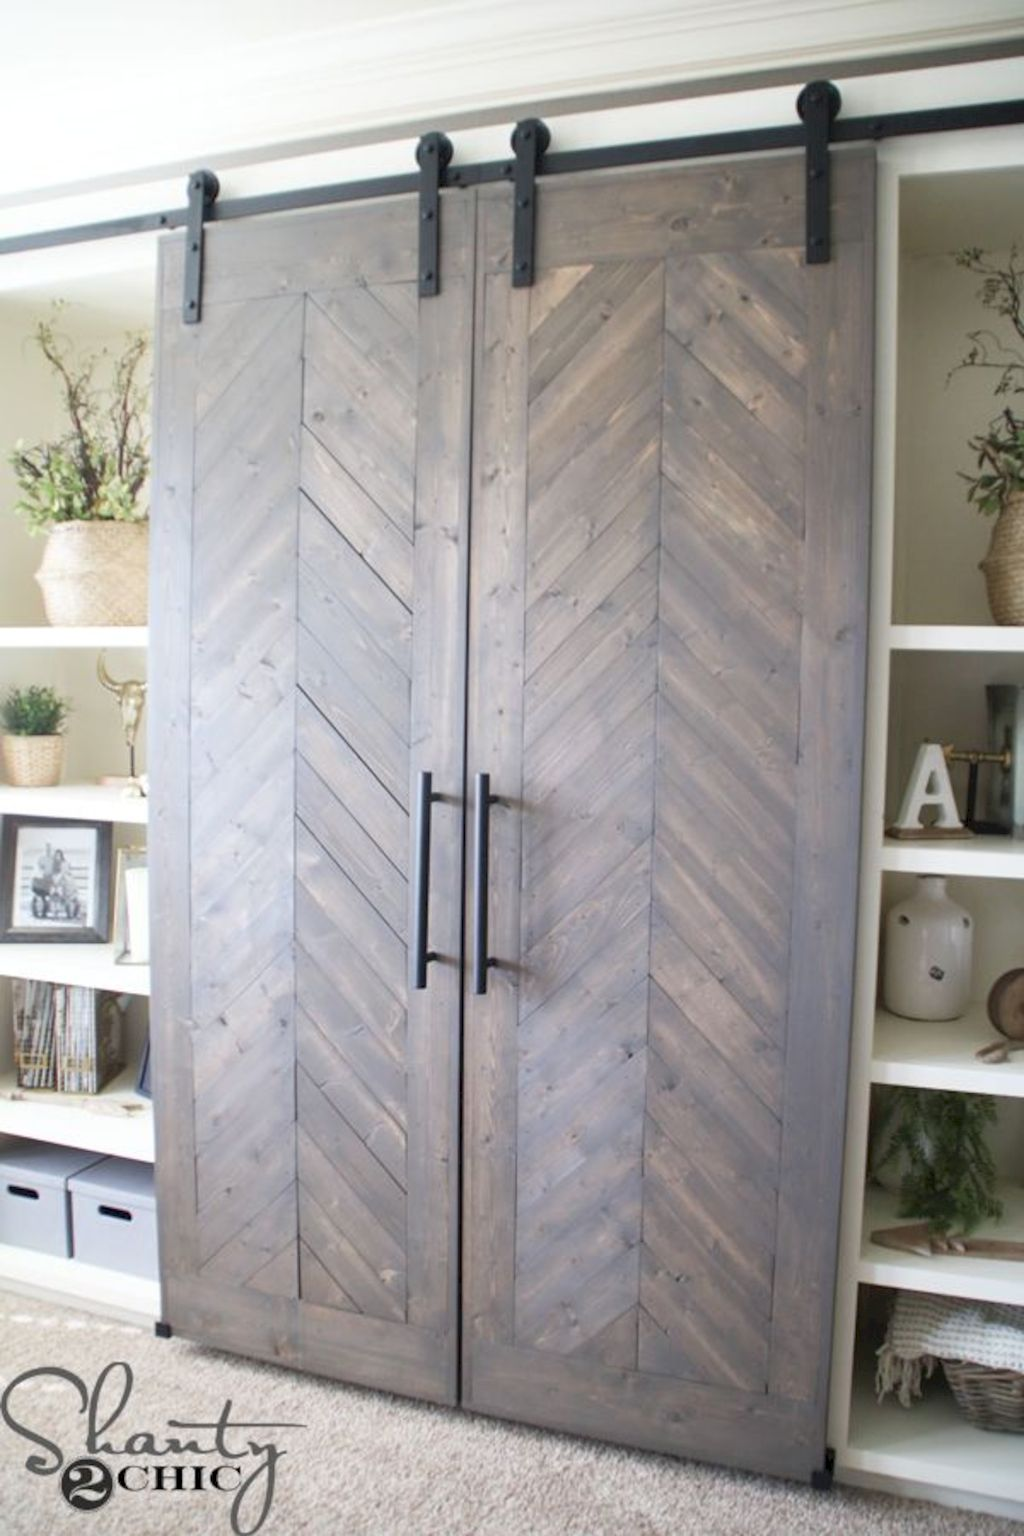 Barn style sliding doors designed for modern rustic home look lovely with traditional finish Image 6